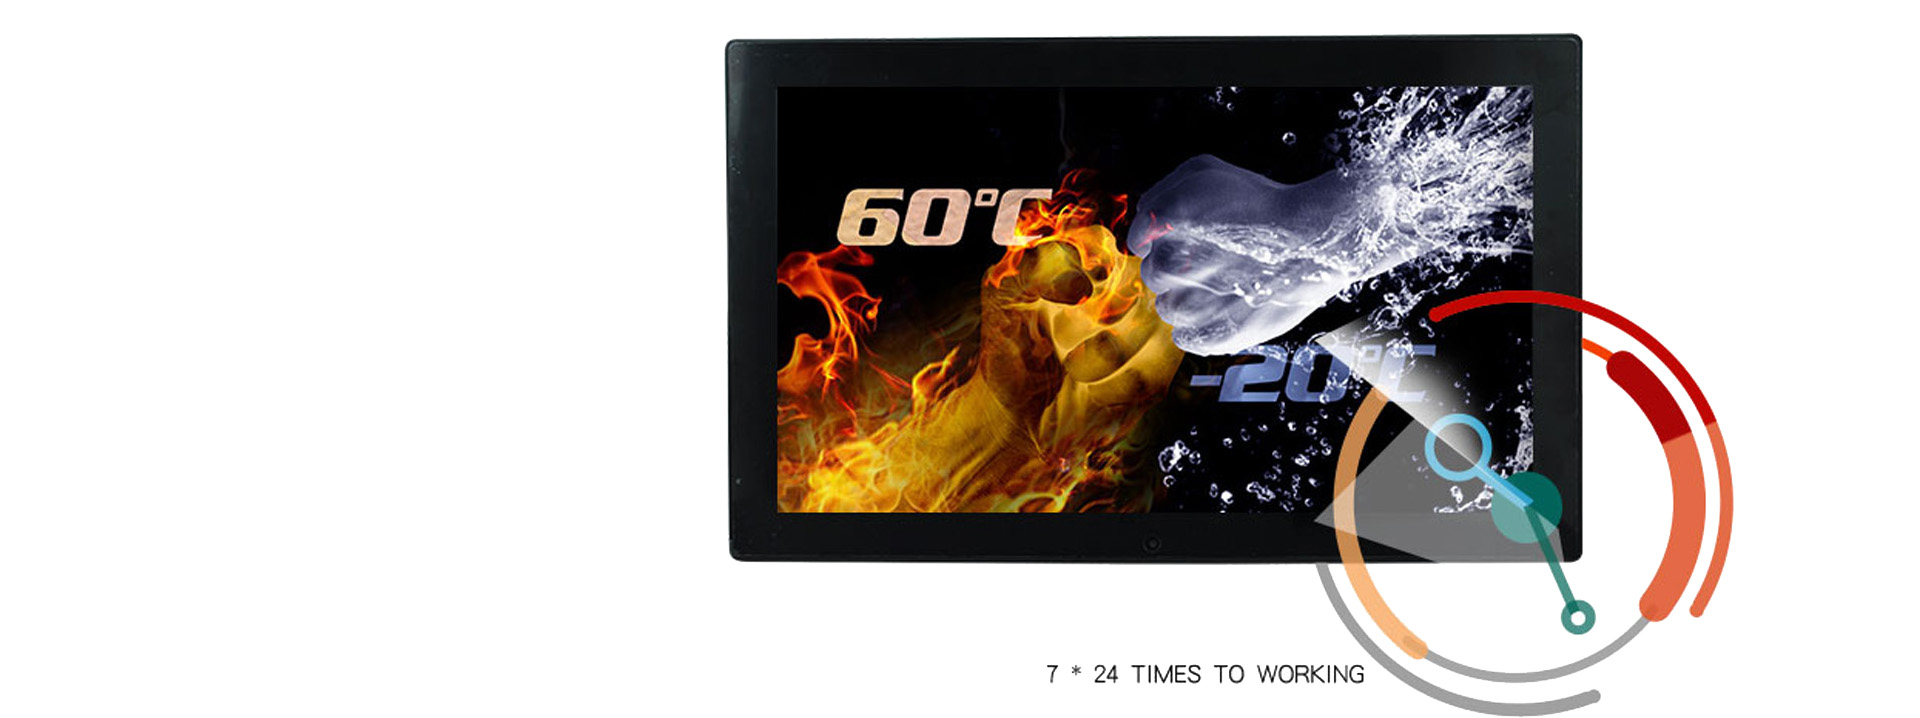 Hengstar -Andriod Poe Wall Mount Tablet Pc With Led Light | Panel Pc Factory-4